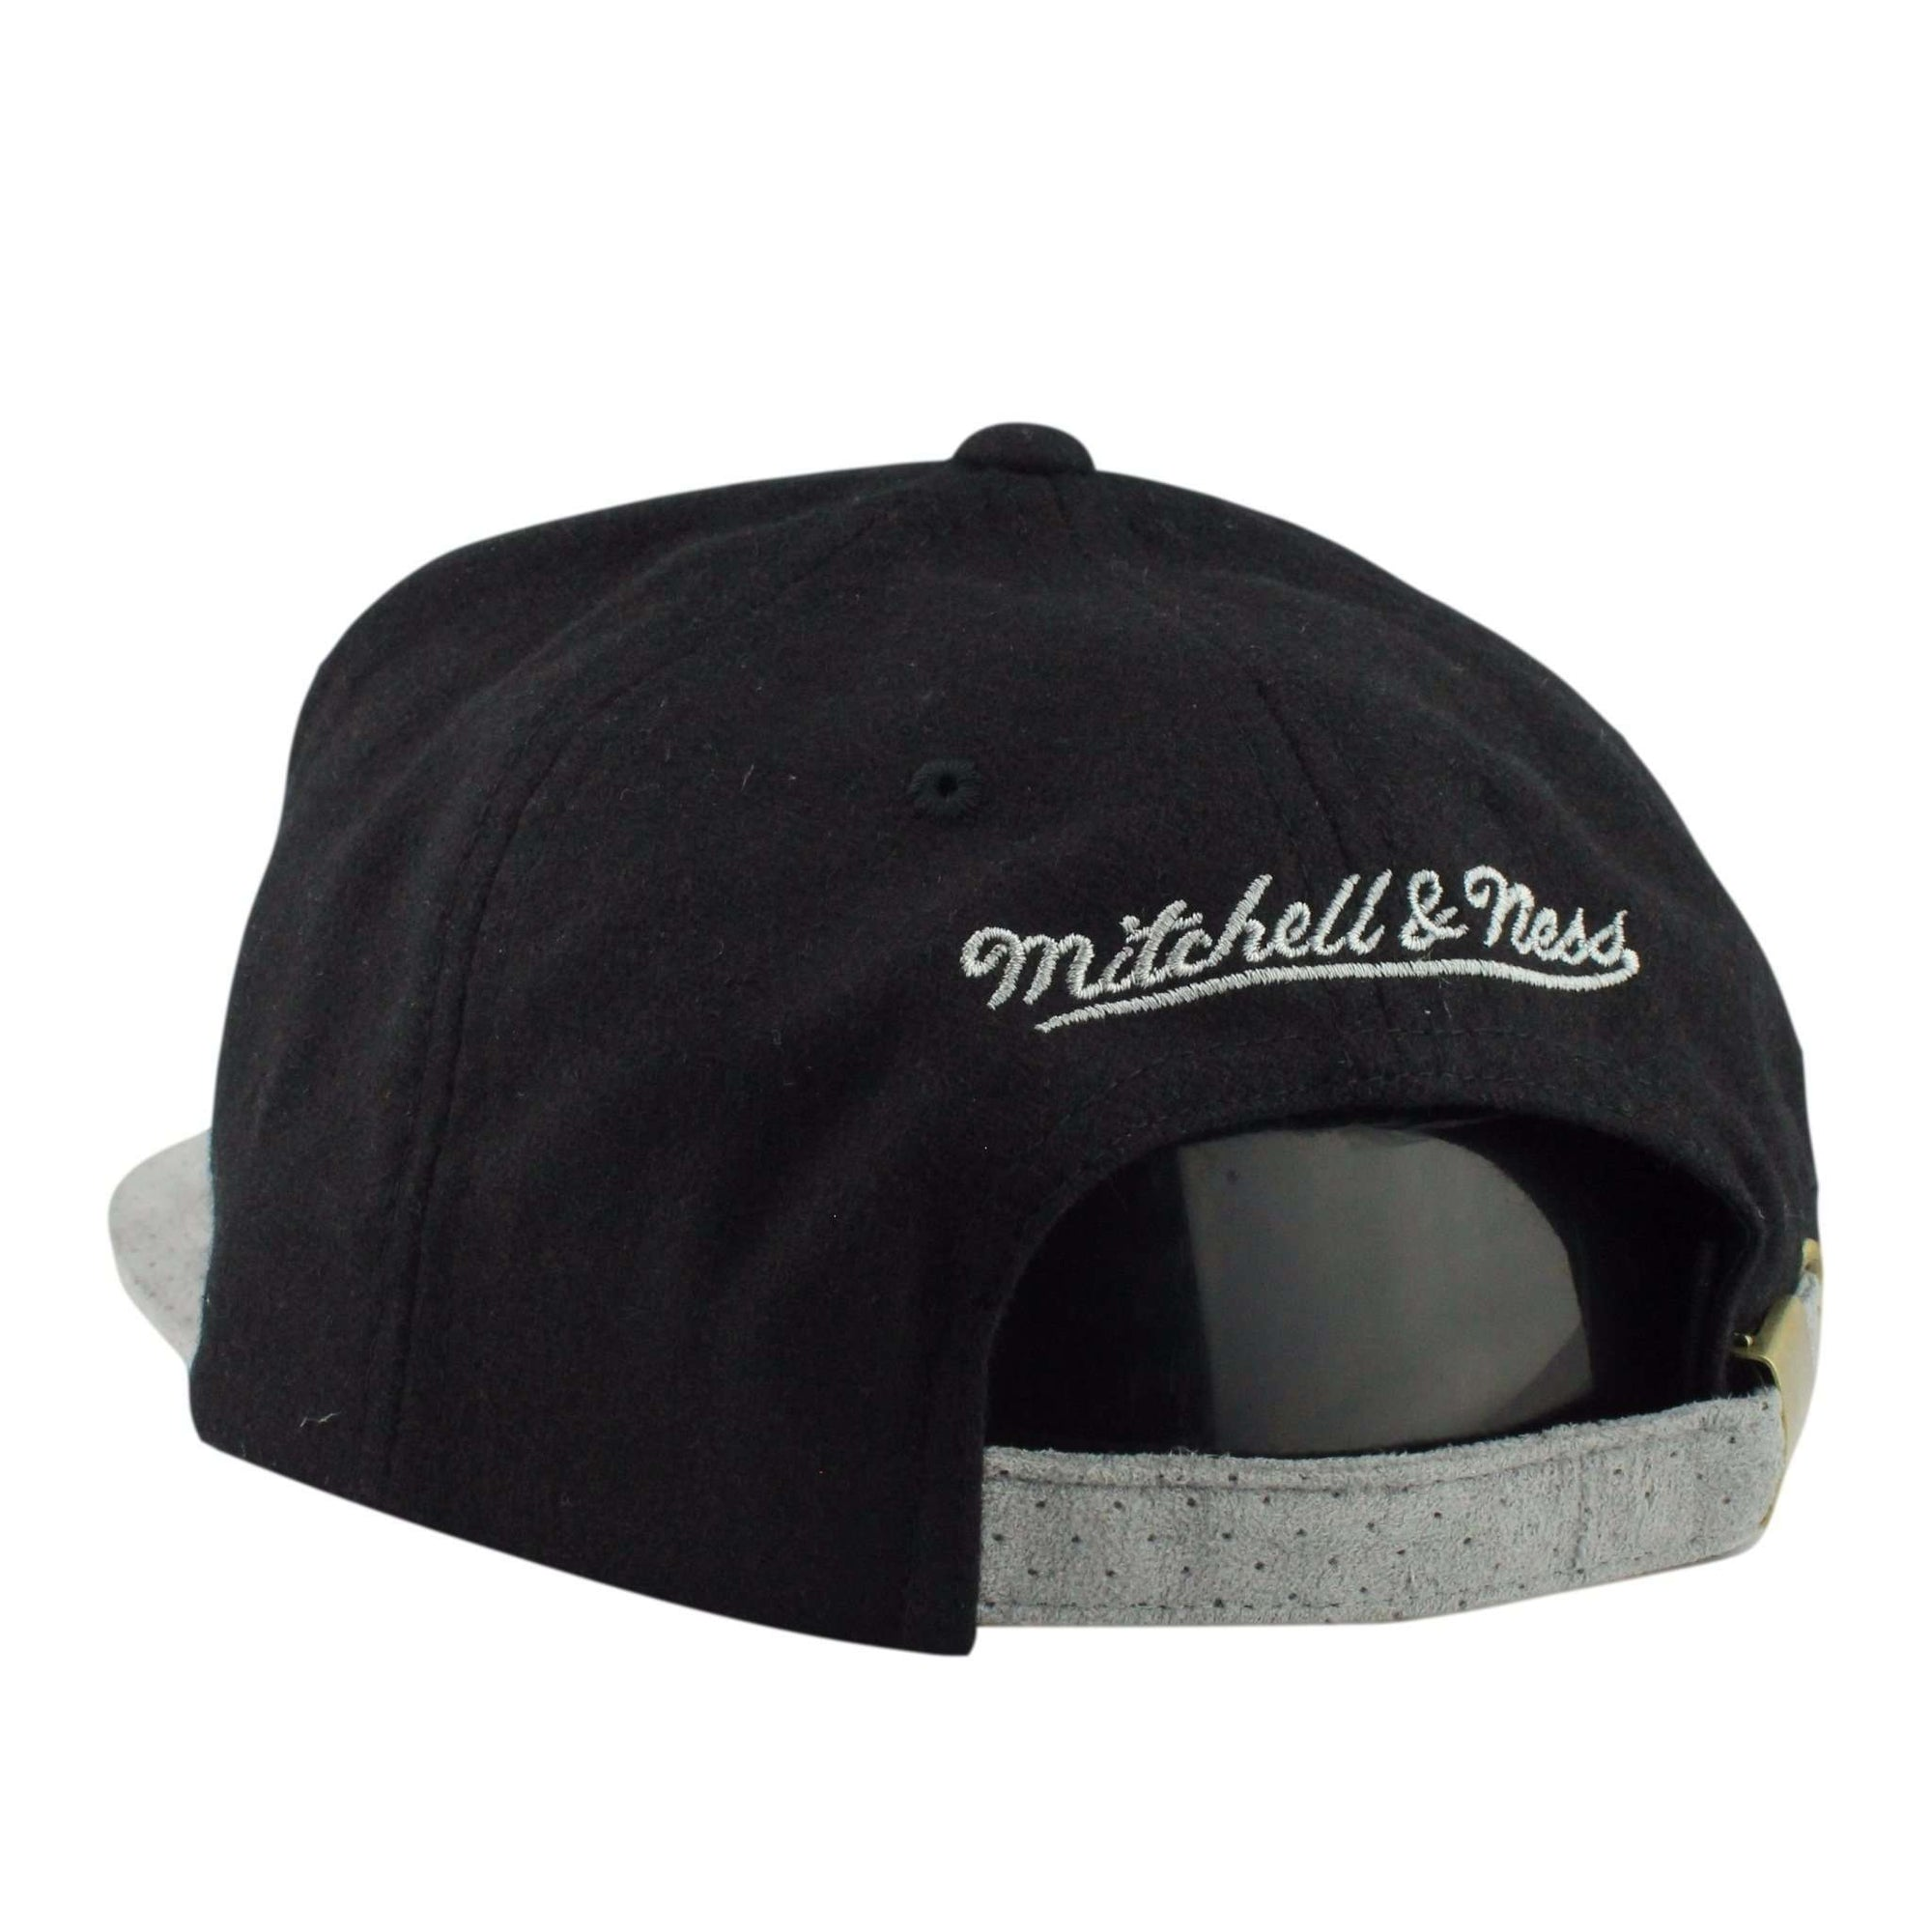 dada972b937 Mitchell and ness brooklyn nets winter suede perf black gray strapback jpg  2000x2000 Nets winter hat